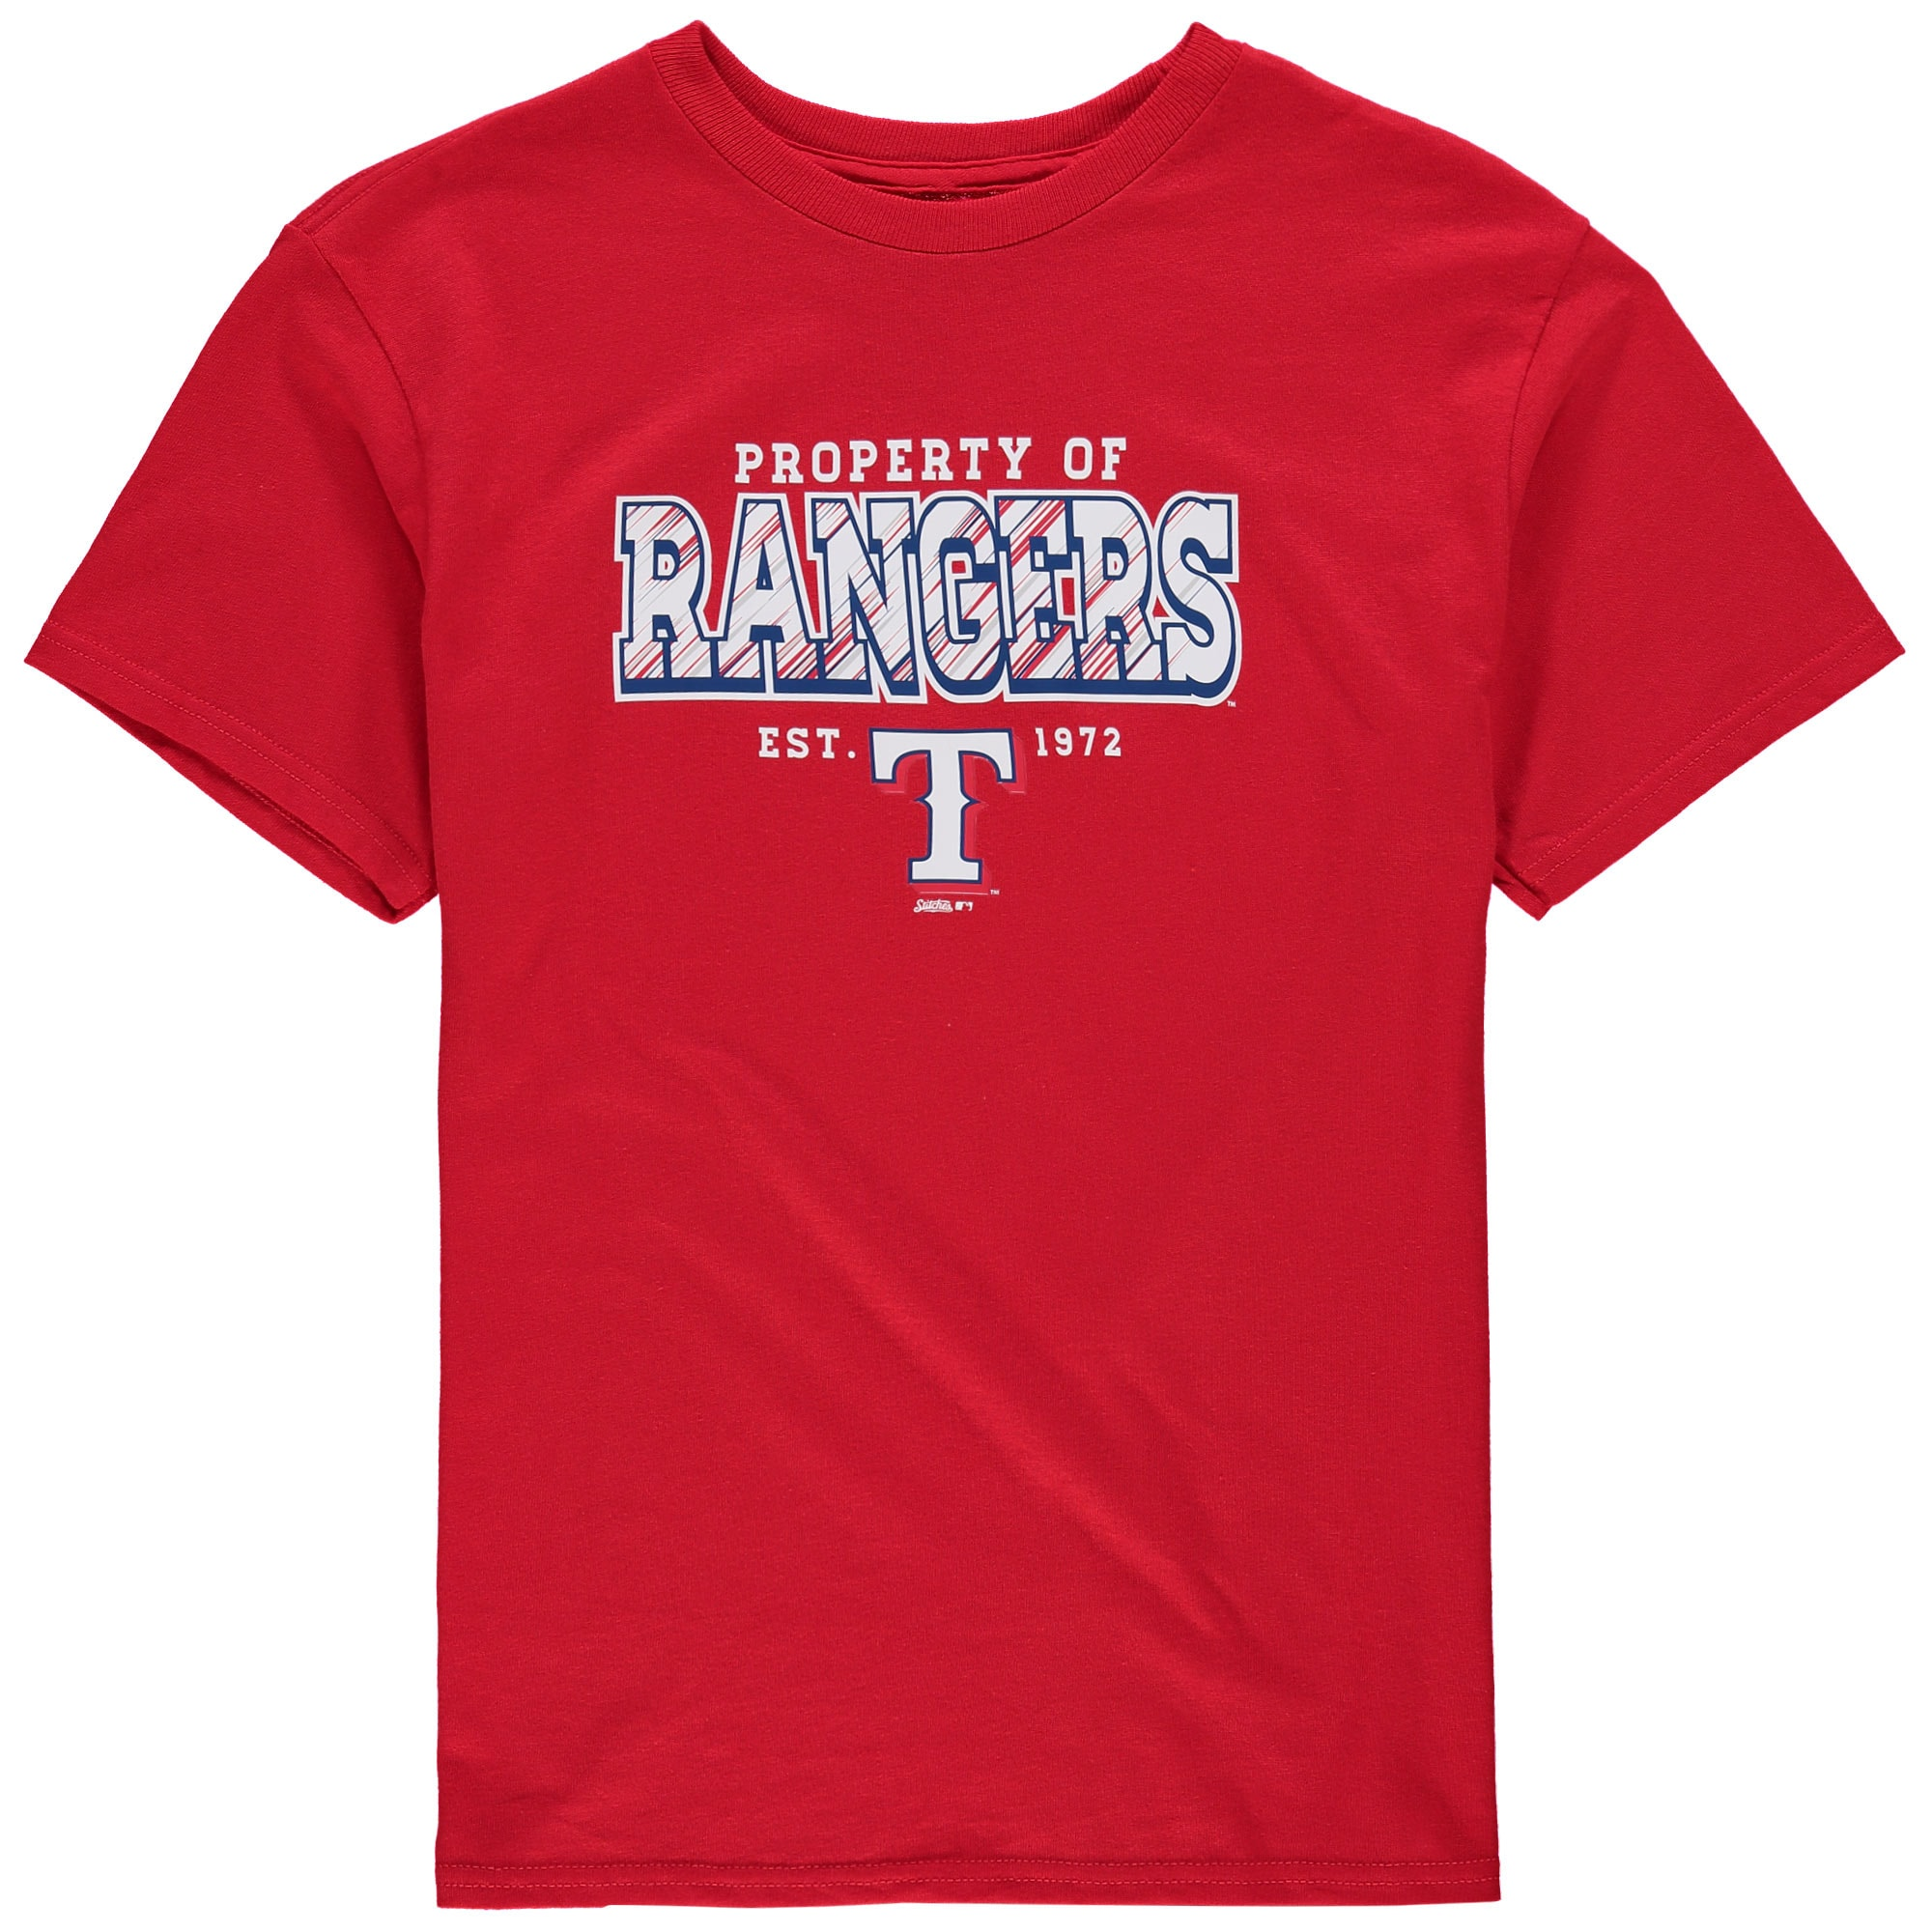 Texas Rangers Stitches Youth Property Of Team T-Shirt - Red